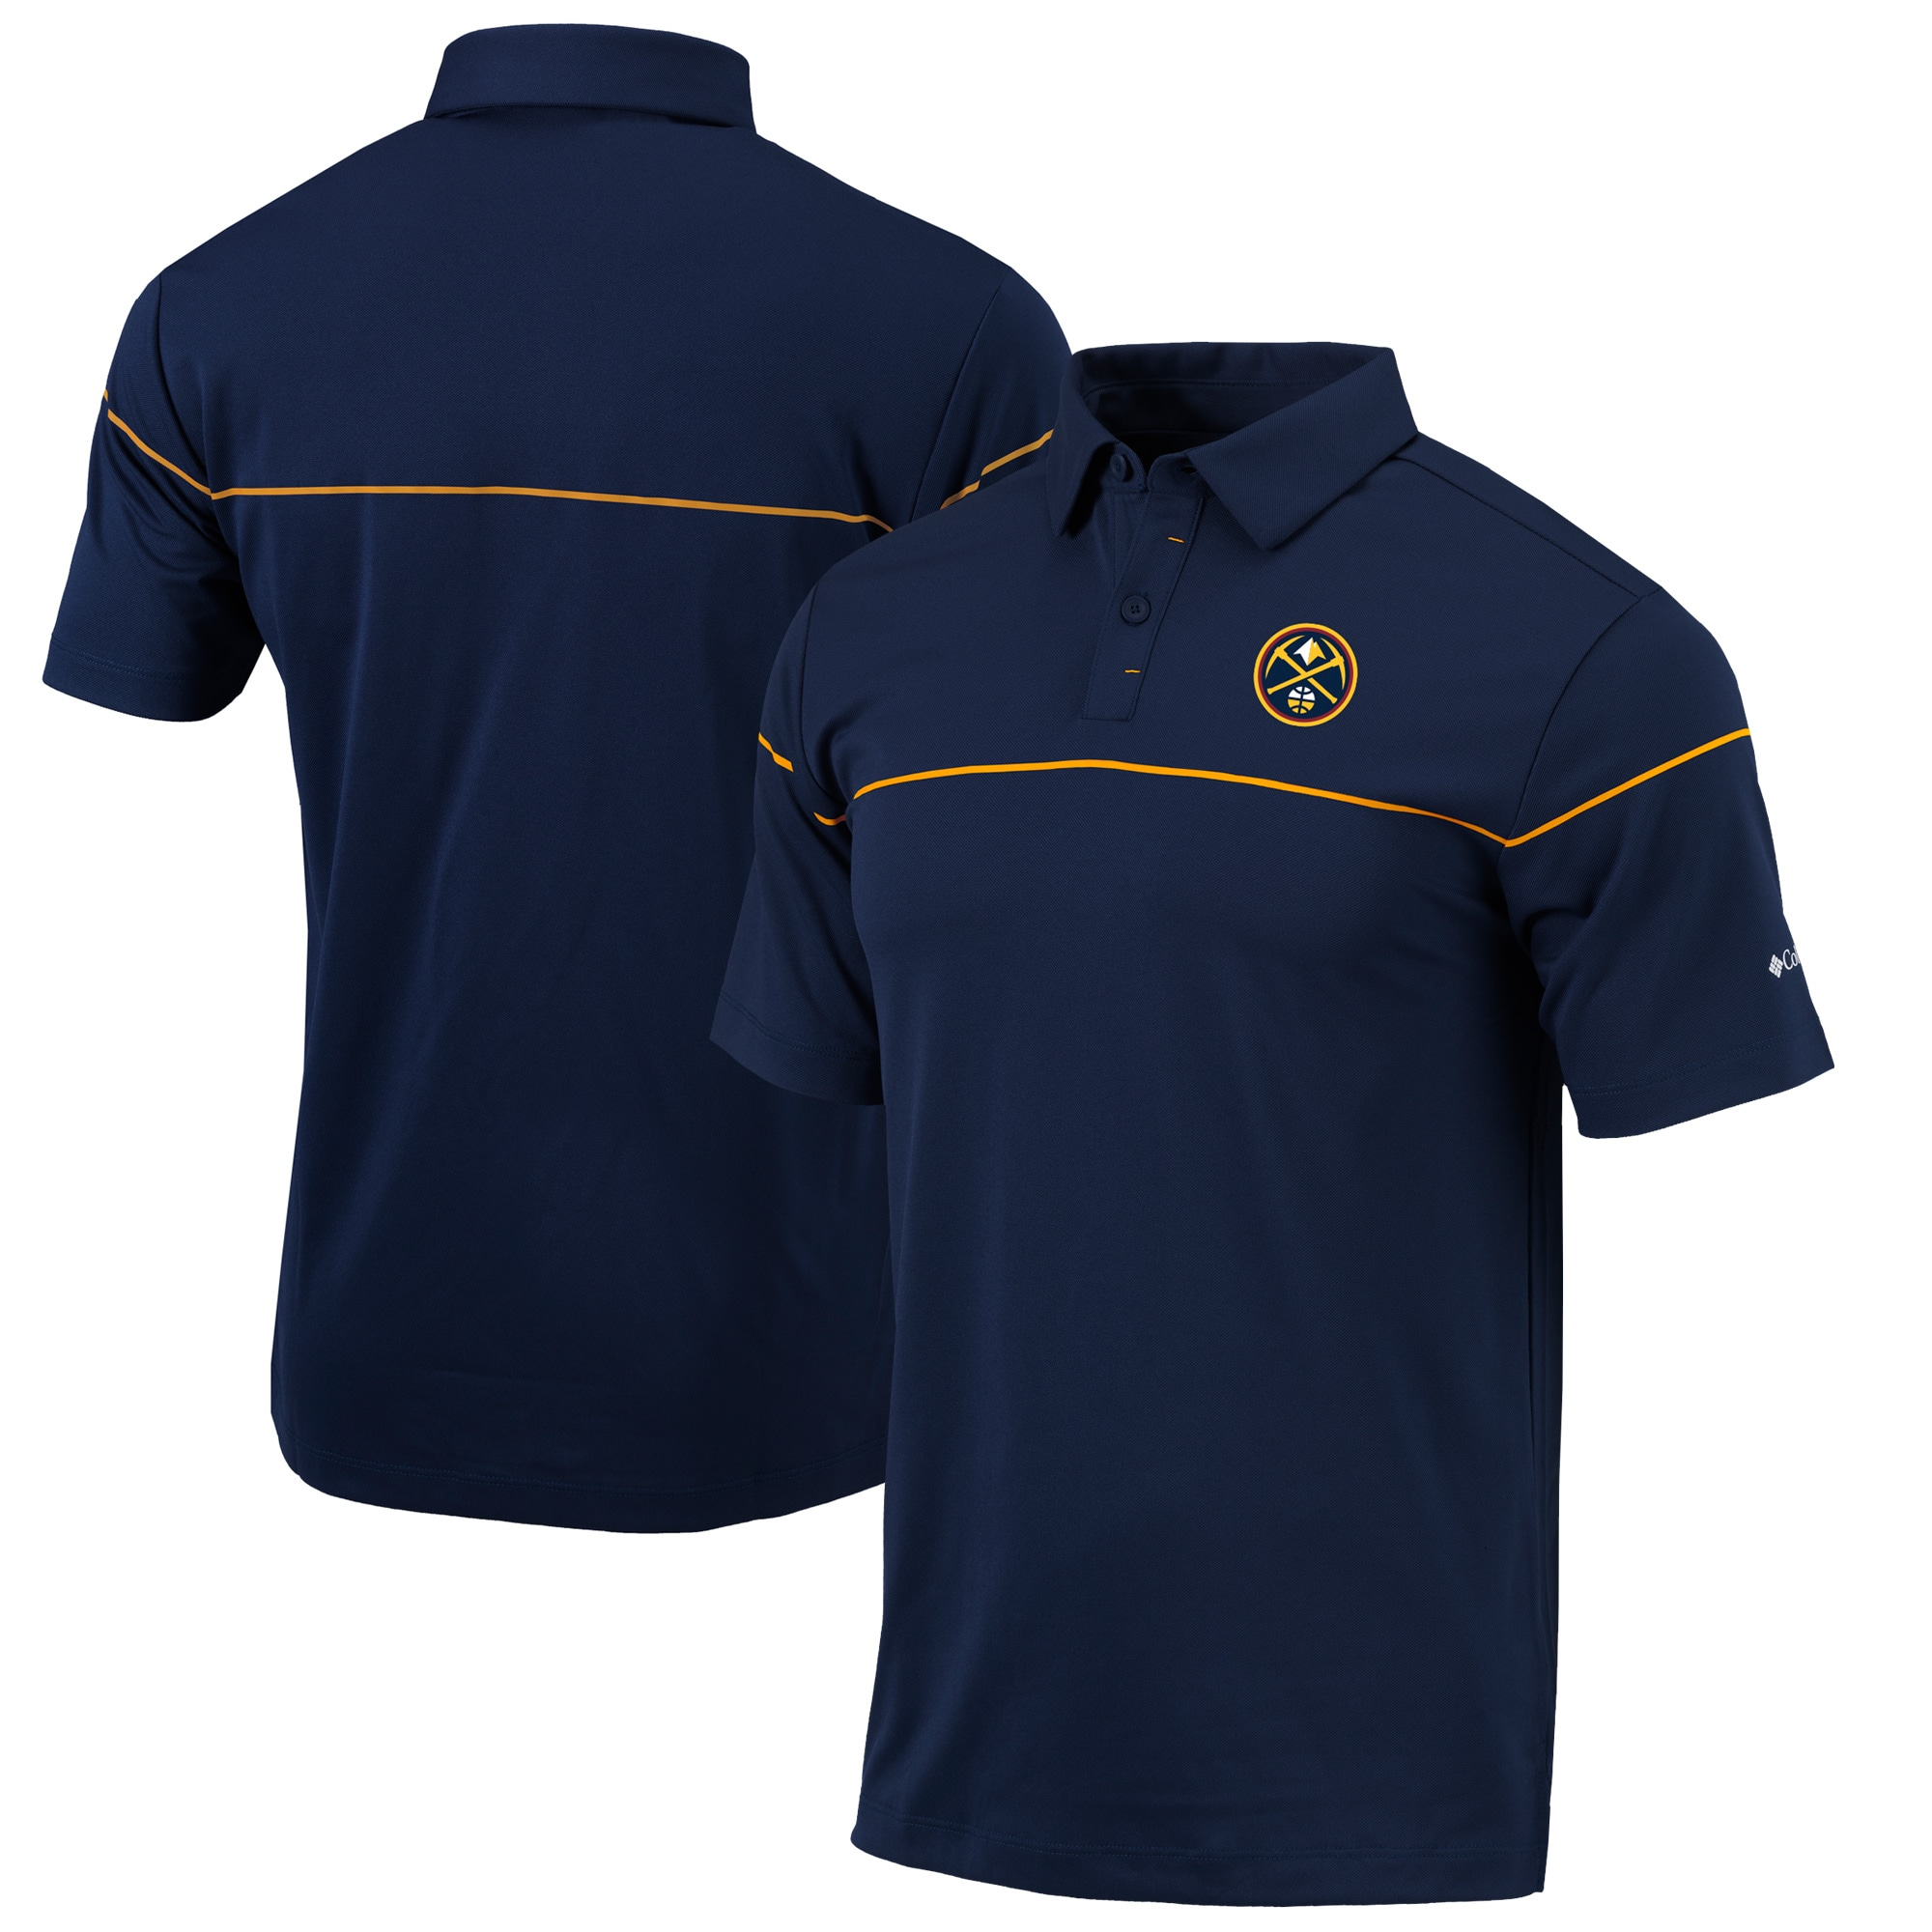 Denver Nuggets Columbia Omni-Wick Breaker Polo - Navy/Gold